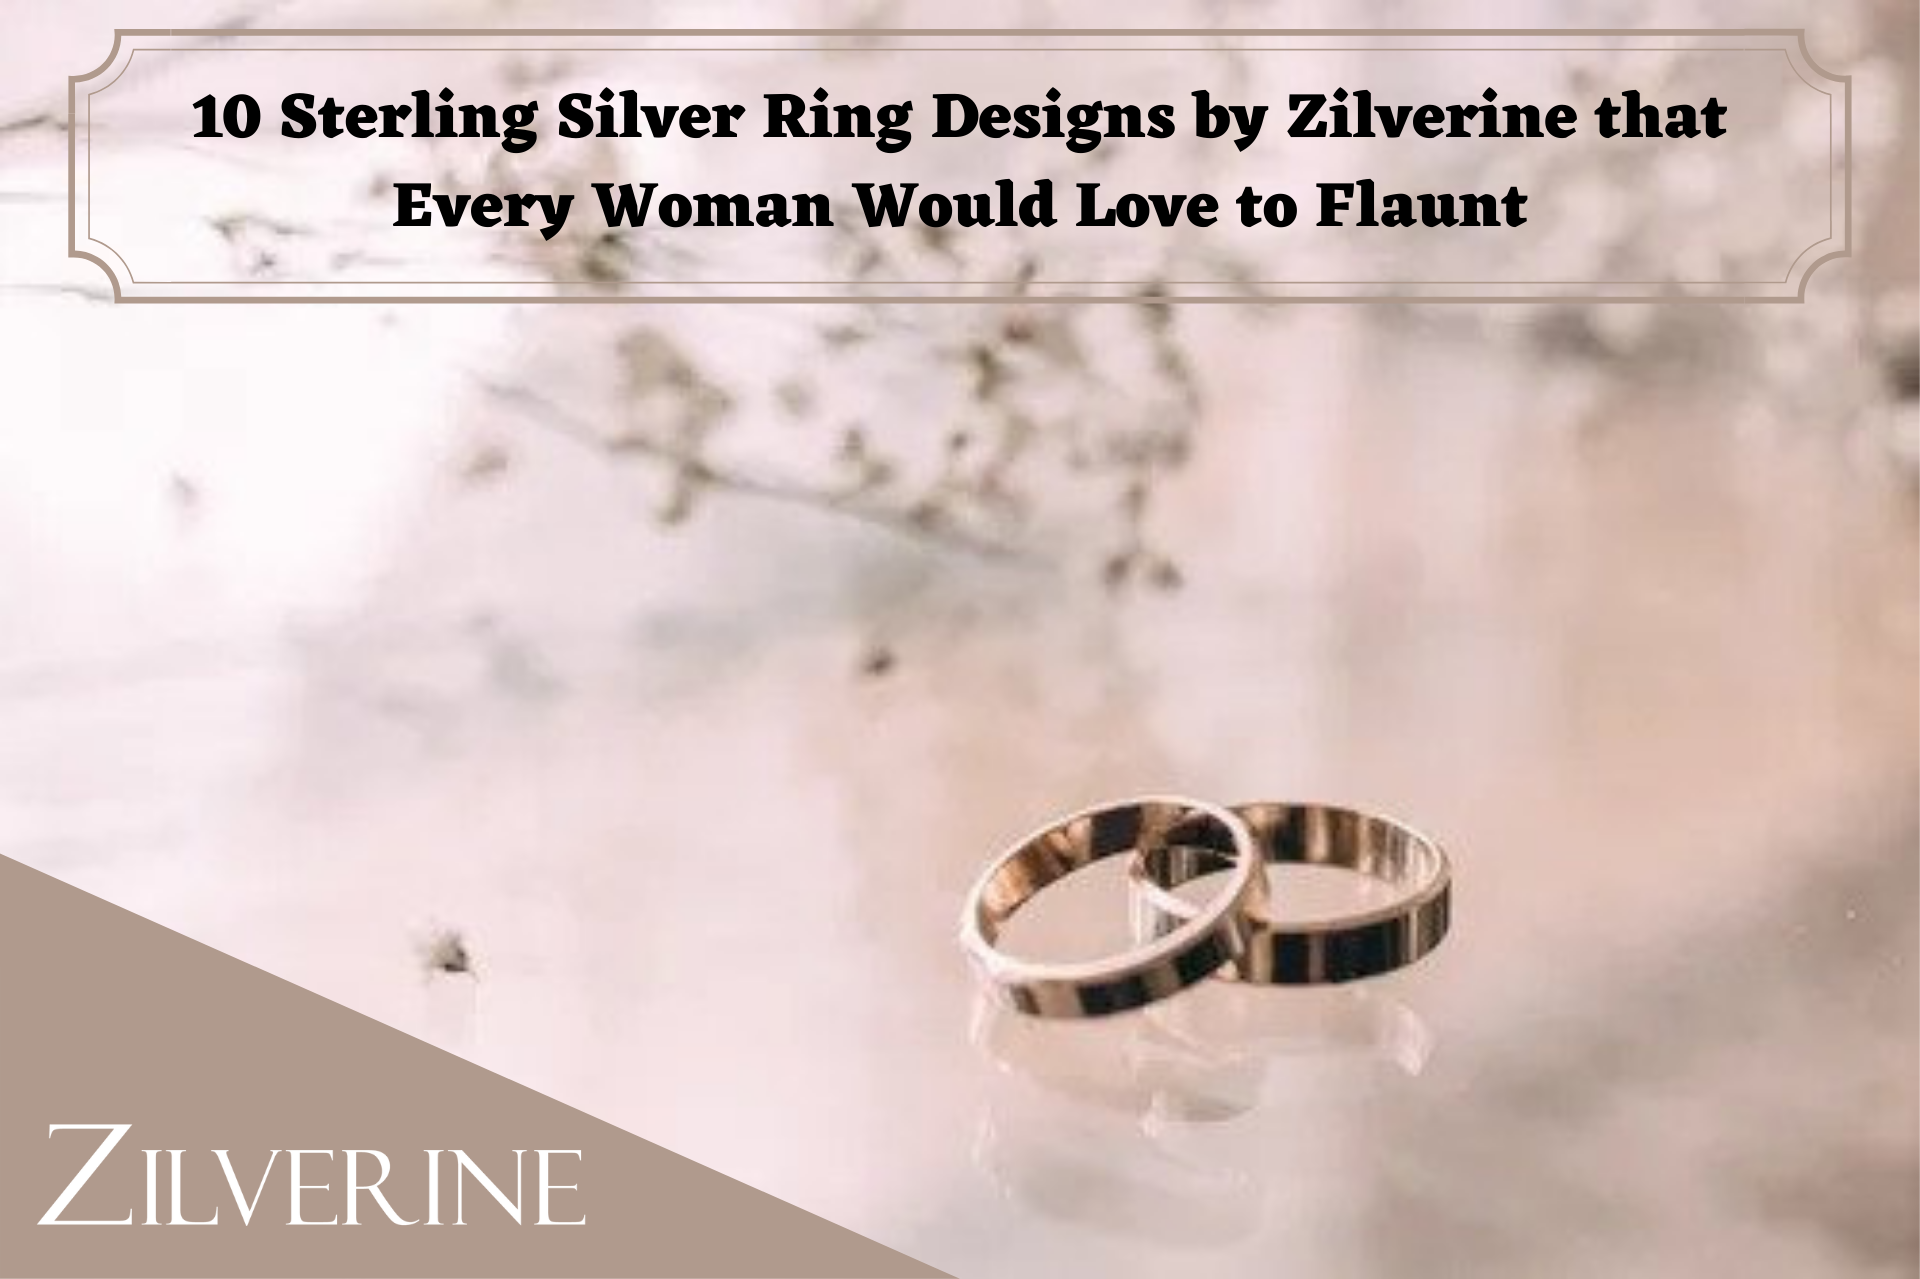 10 Sterling Silver Ring Designs by Zilverine that Every Woman Would Love to Flaunt